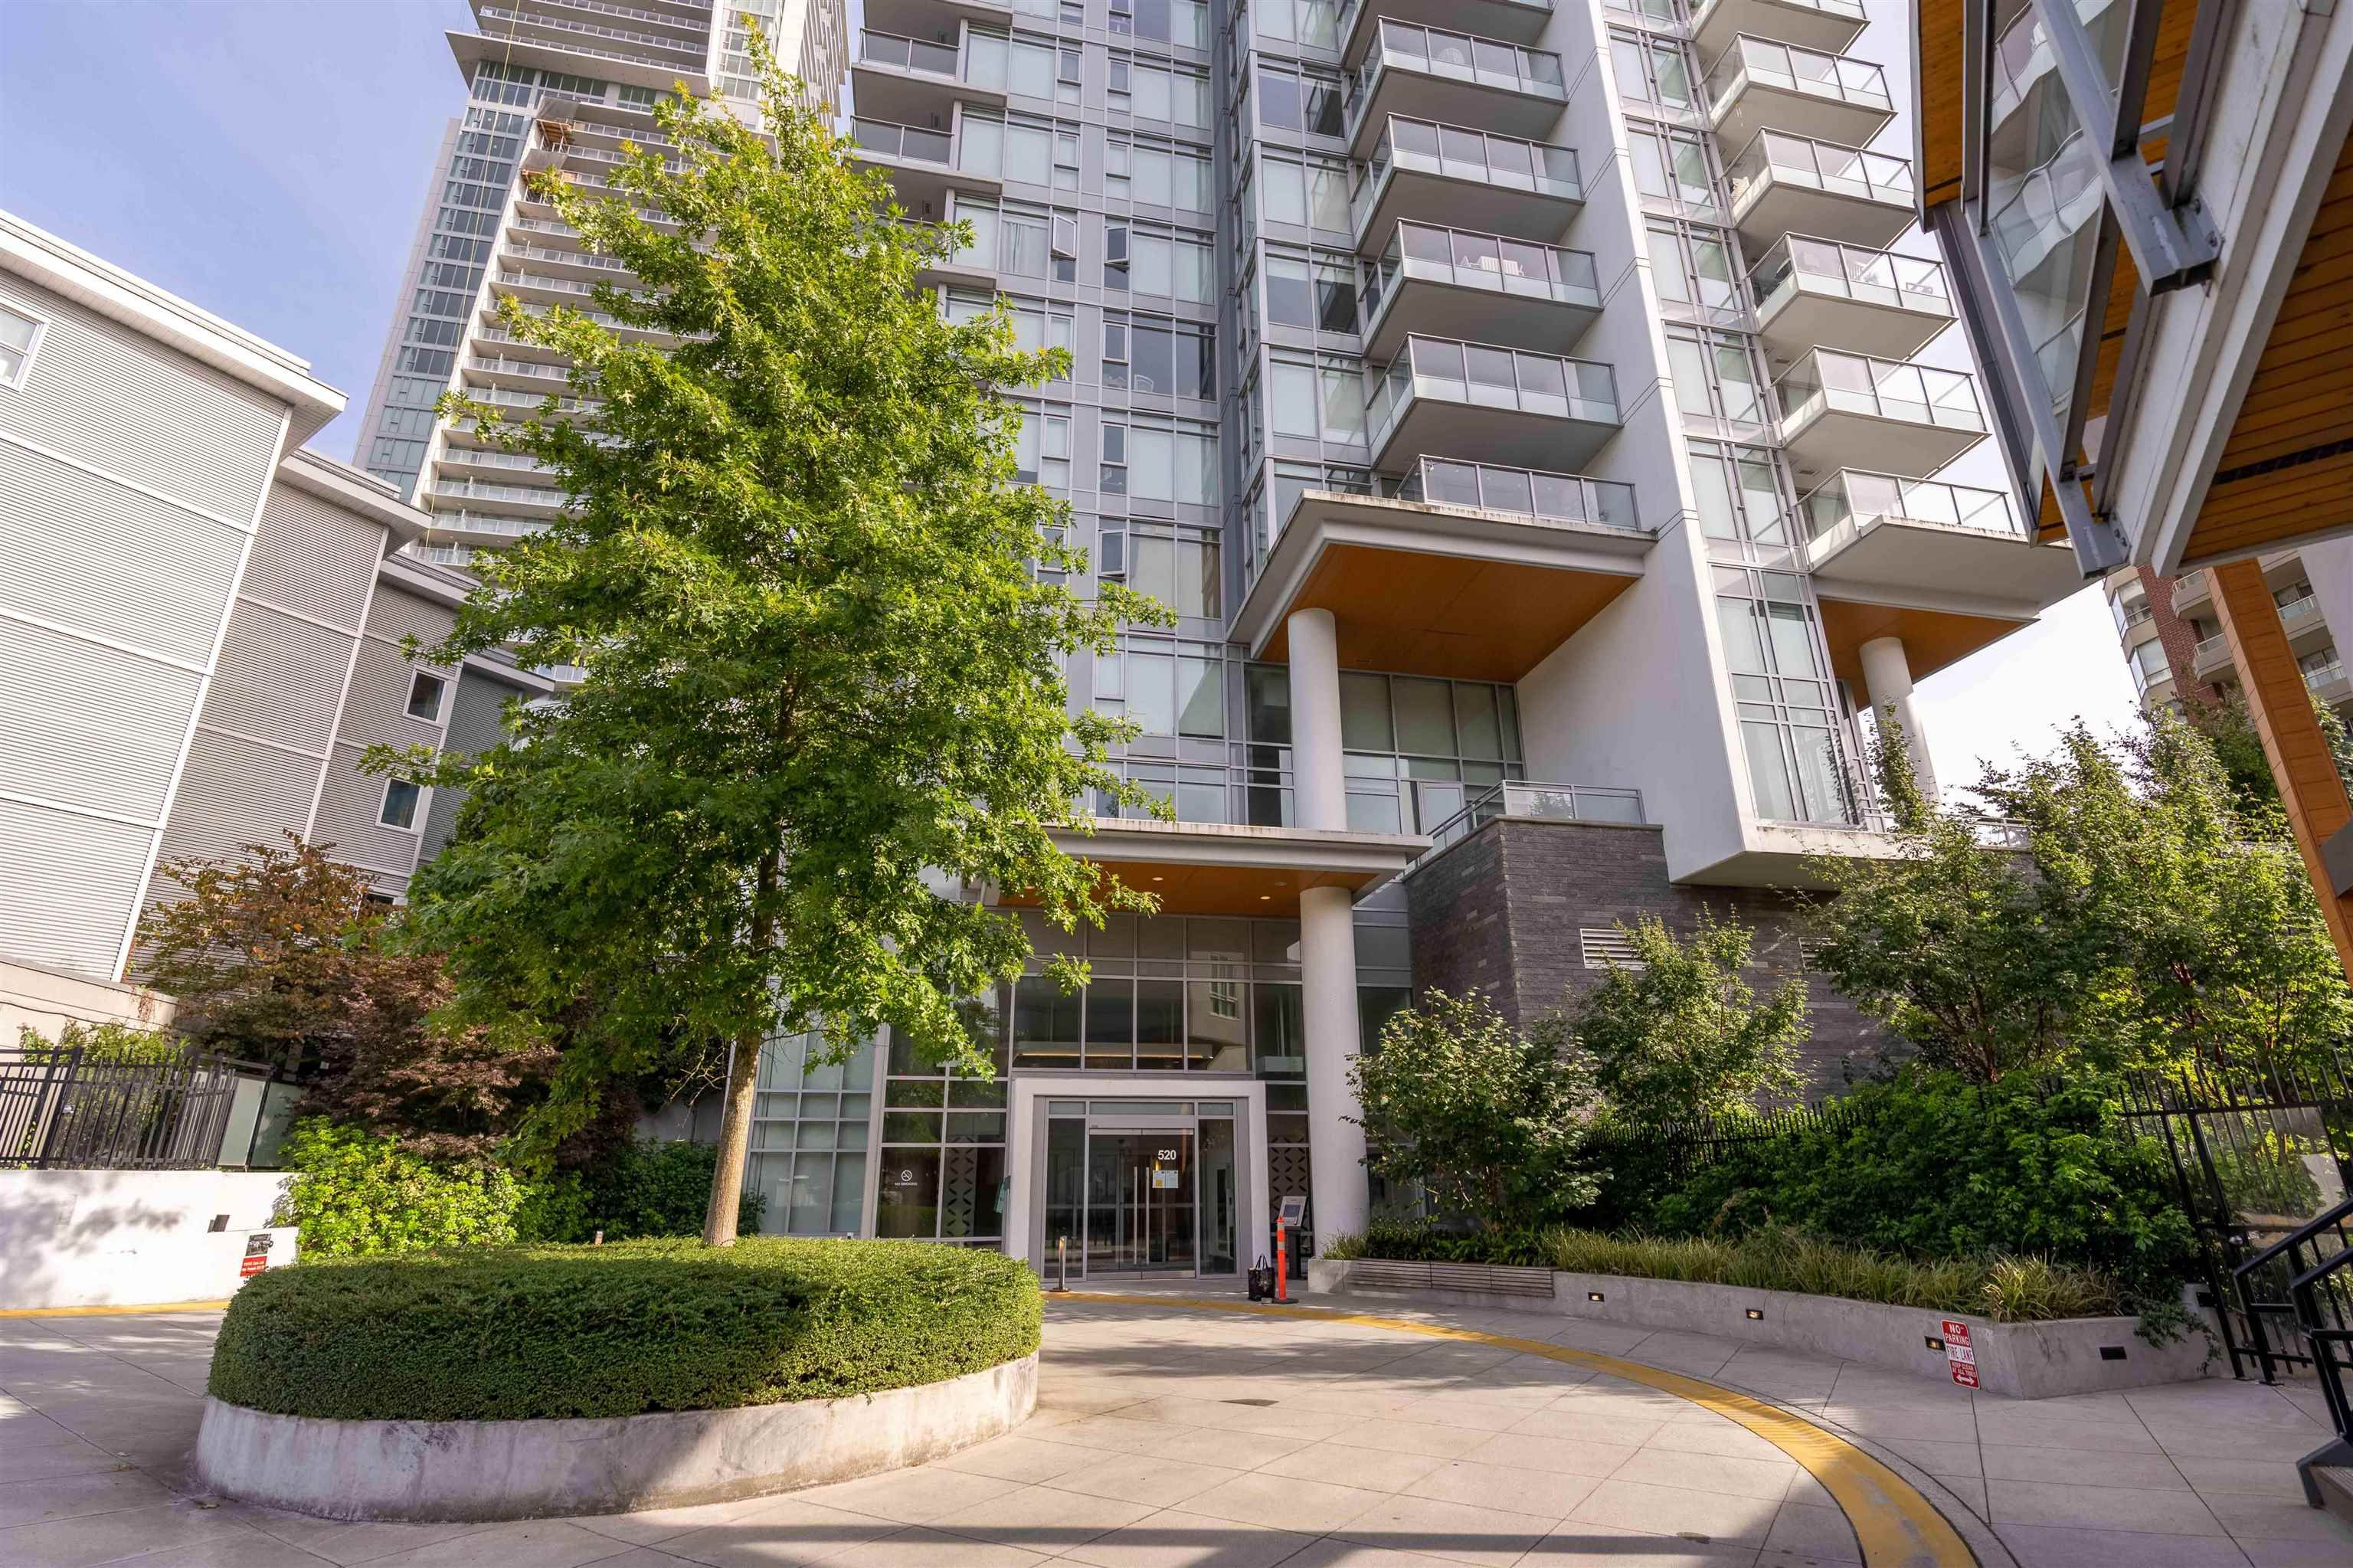 """Main Photo: 1402 520 COMO LAKE Avenue in Coquitlam: Coquitlam West Condo for sale in """"The Crown"""" : MLS®# R2619020"""